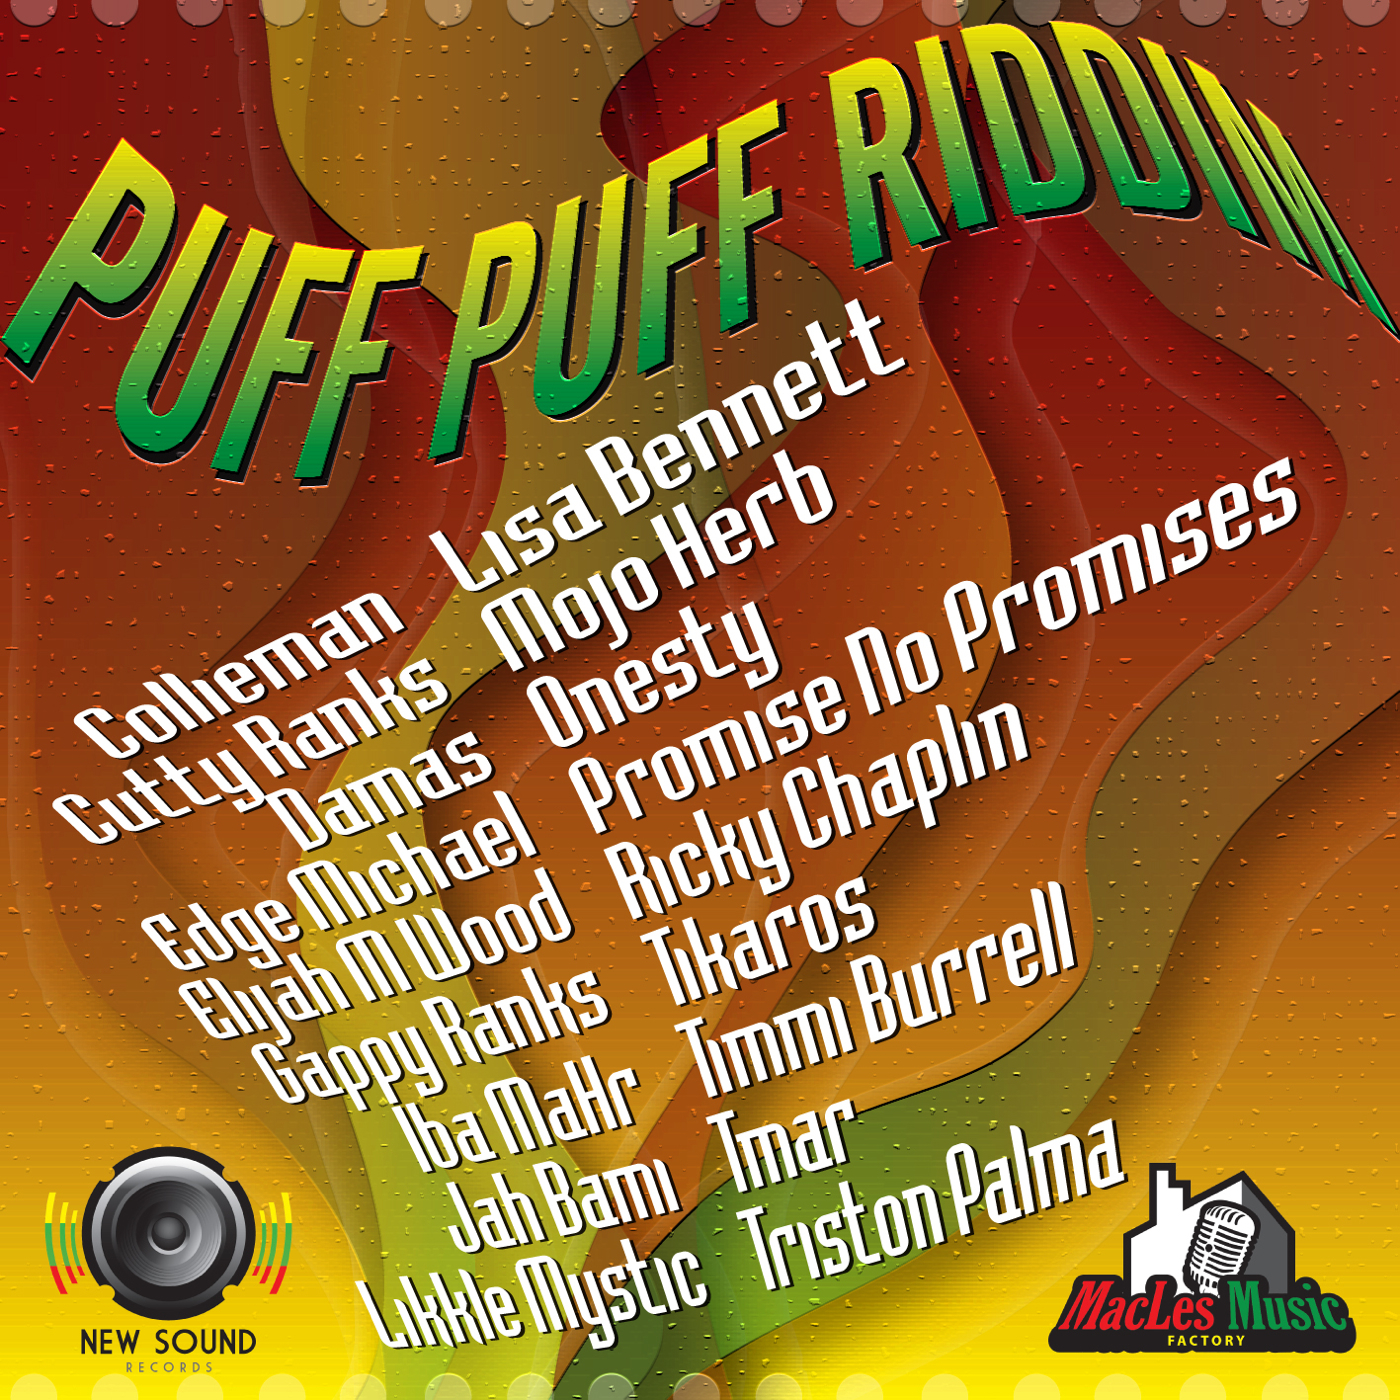 PUFF PUFF RIDDIM – NEW SOUND RECORDS & MACLES MUSIC FACTORY